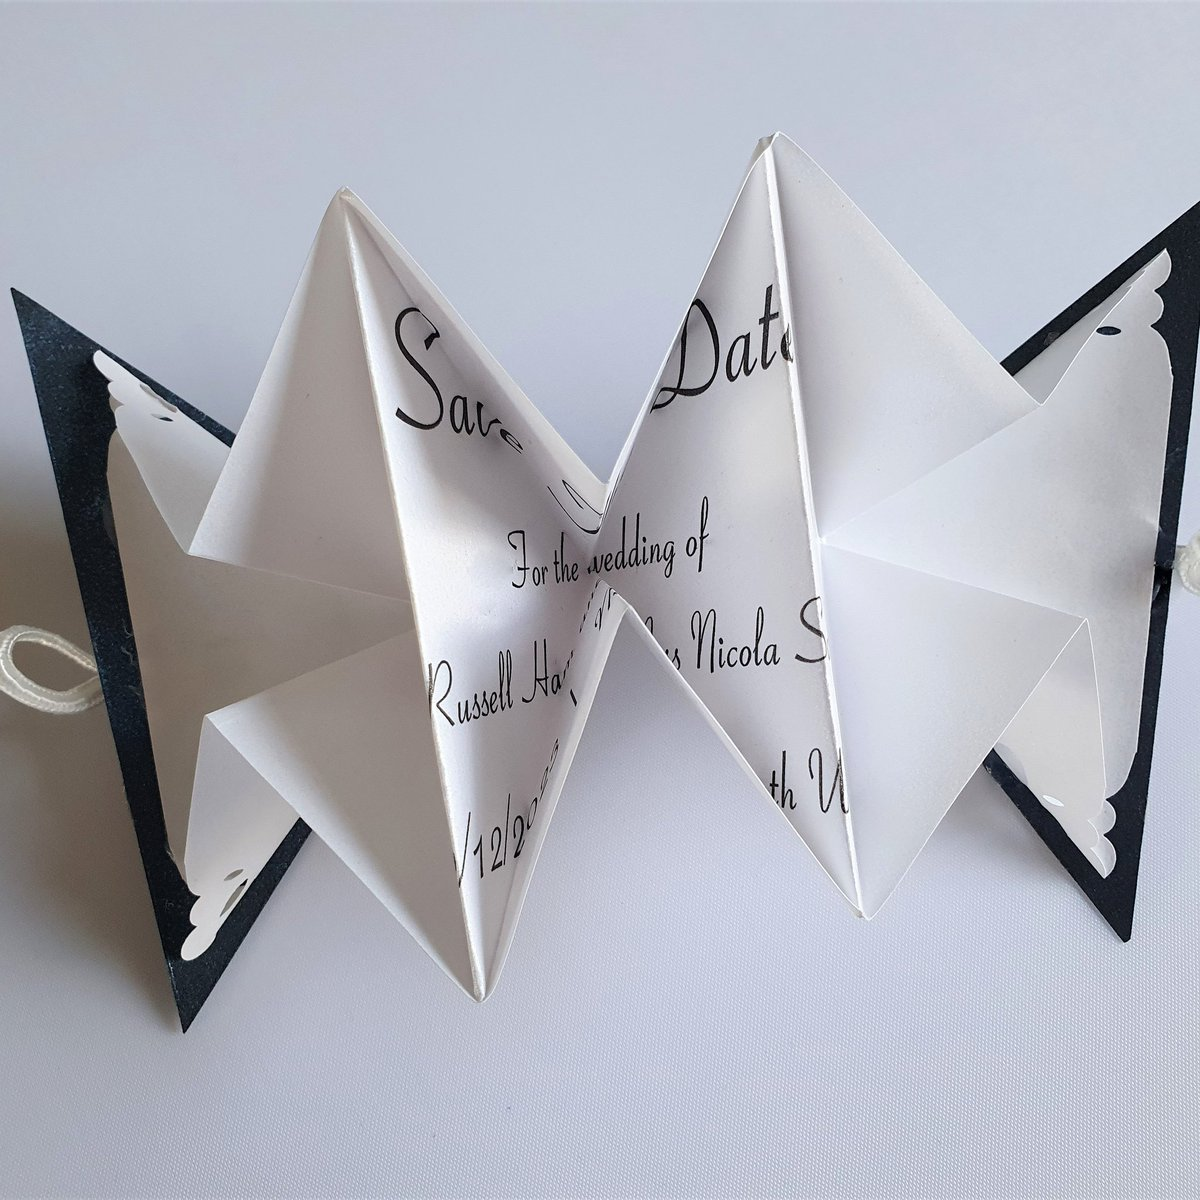 Origami Works Paper Made To Be Dog.; Solution Public In Internet ... | 1200x1200